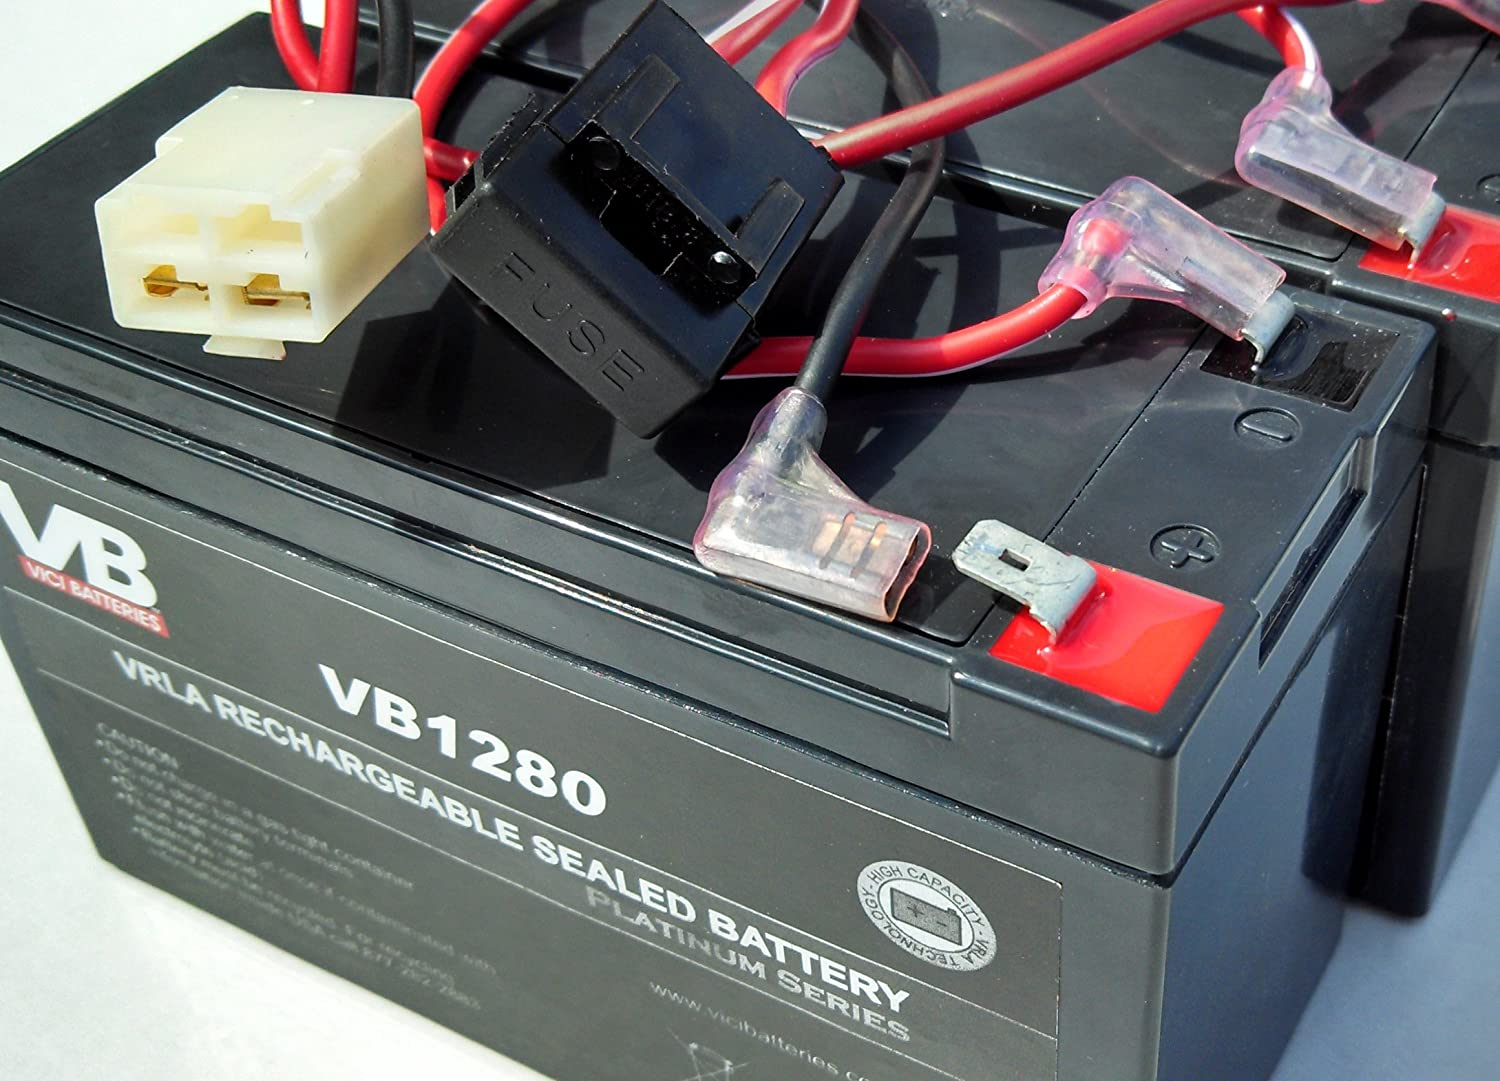 Pocket Mod Razor Battery Replacement Includes Wiring Diagram Harness 8 Ah Capacity 24 Volt System By Vici Batterytm Sports Scooter Batteries